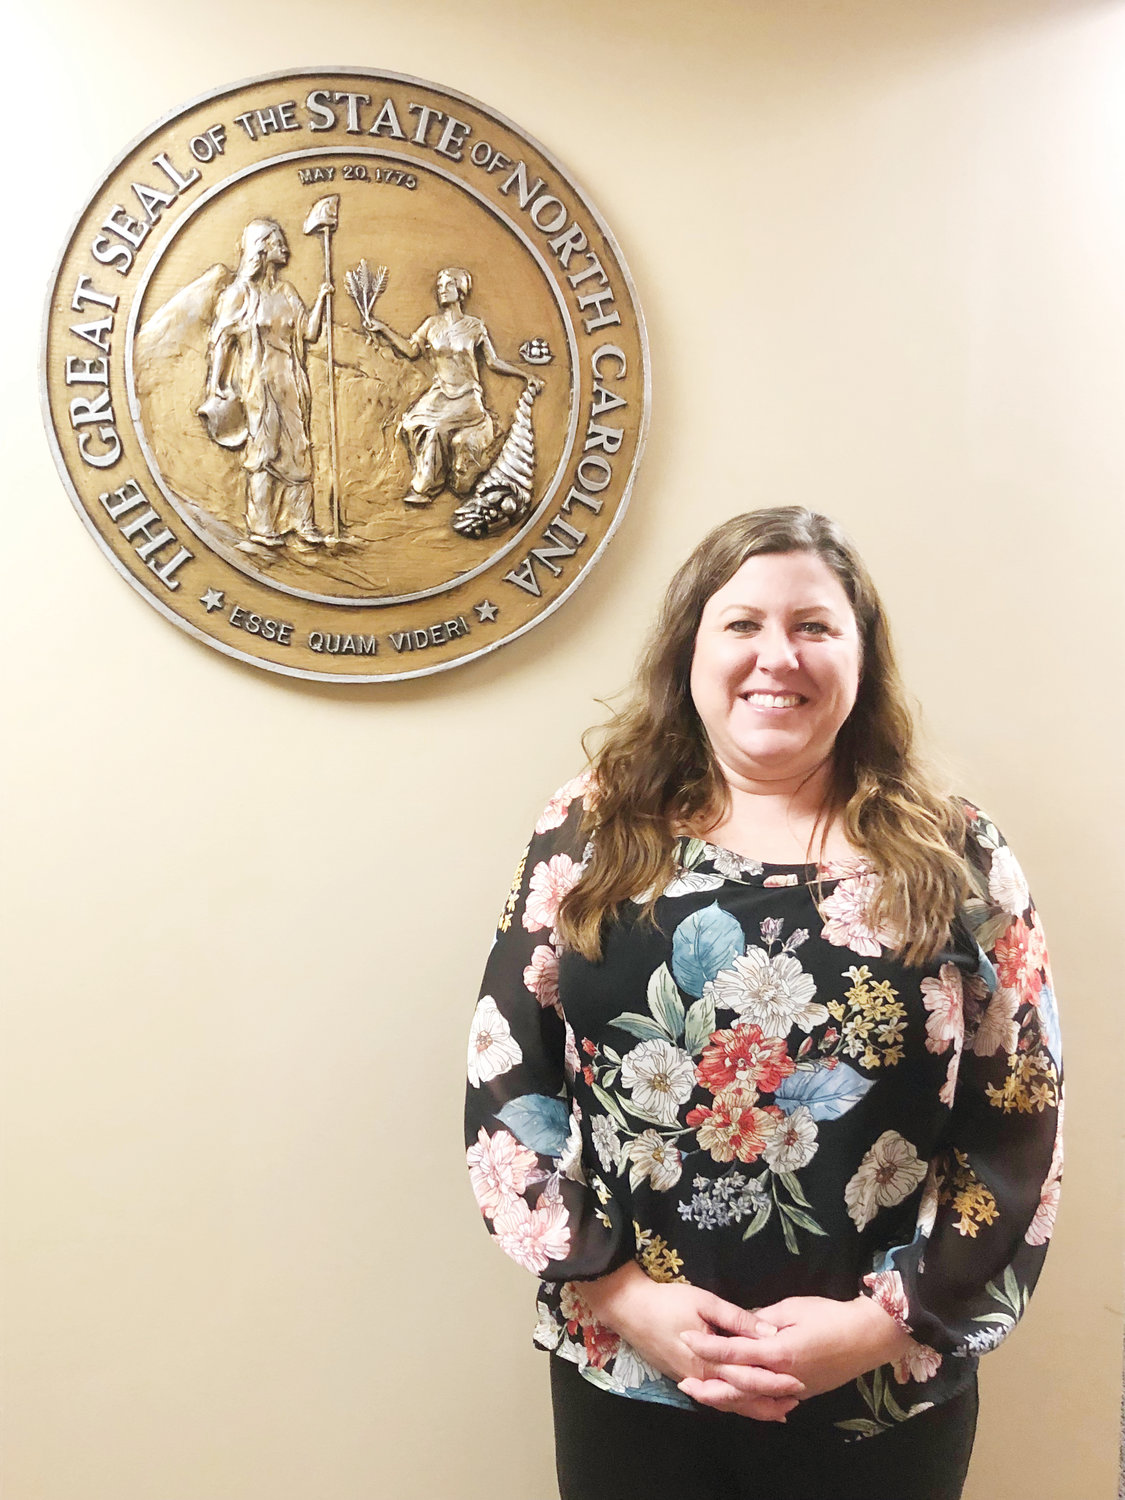 Lindsay Ray is the Clerk to the Chatham County Board of Commissioners and Assistant to the County Manager. Around the office, she's often called Leslie Knope, the lead character from the television series 'Parks and Recreation.' 'I eat, breathe, sleep local government,' she said.